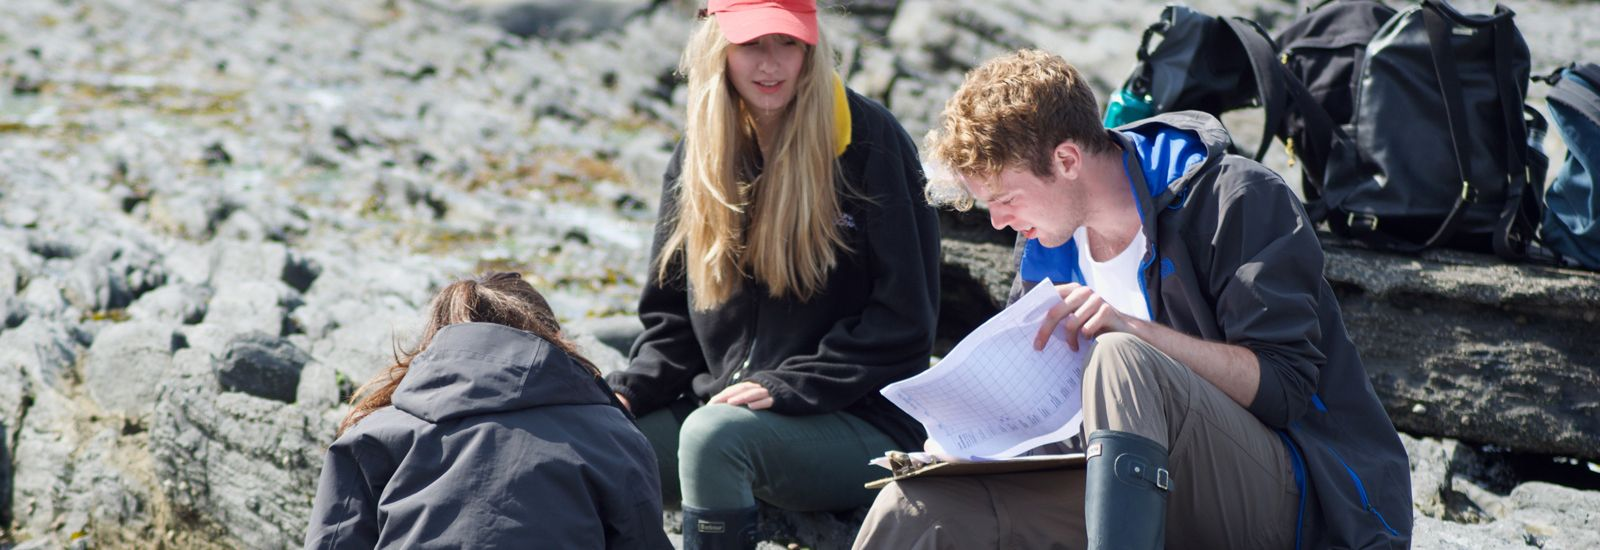 Three students in outdoor clothes record data on a clipboard in a rocky area of Orielton, Wales